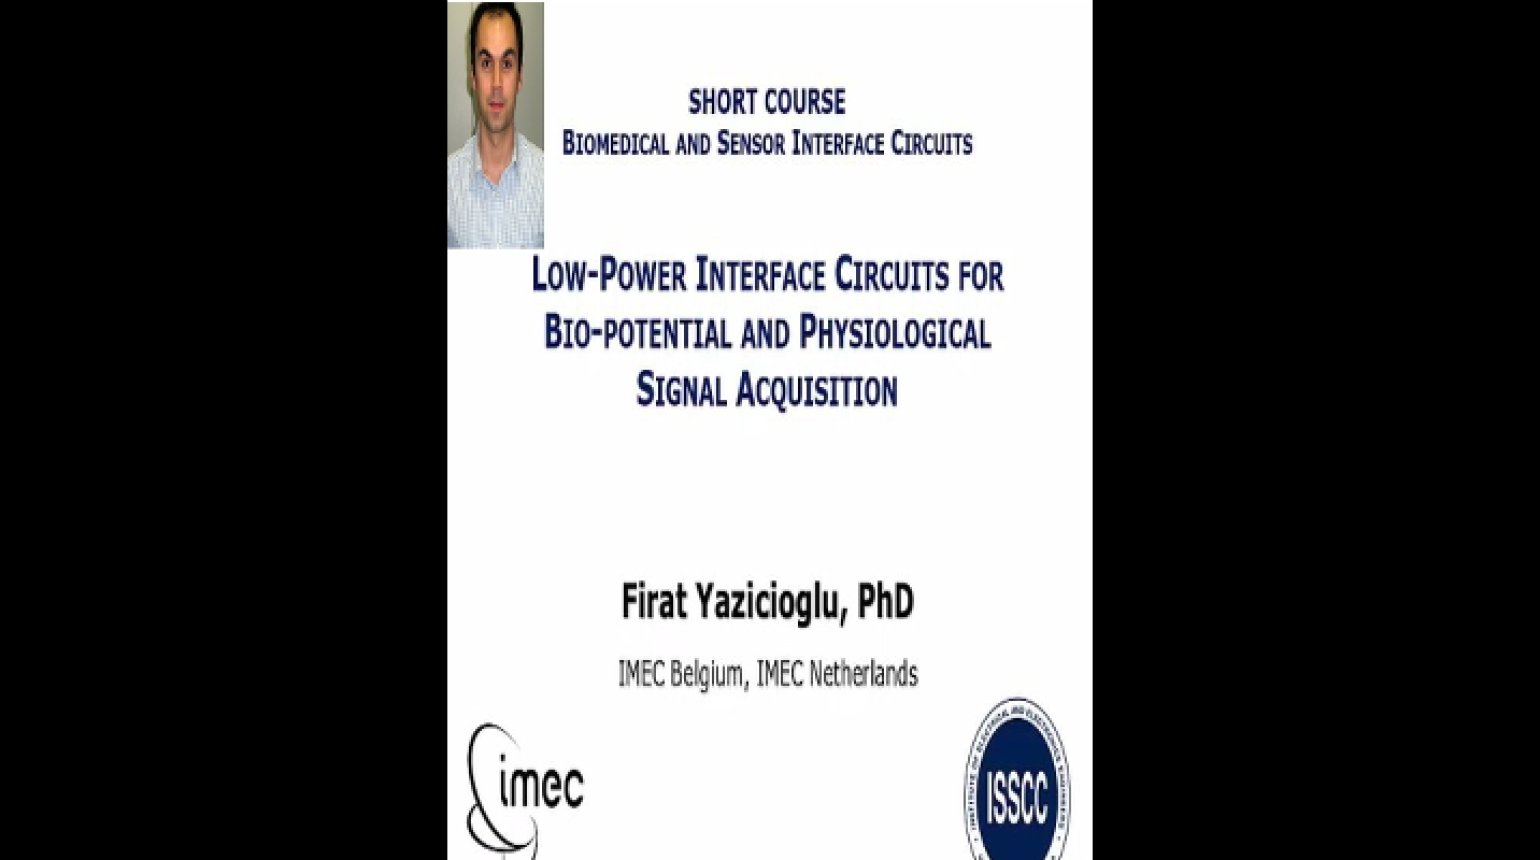 Low-Power Interface Circuits for Bio-Potential and Physiological Signal Acquisition Video